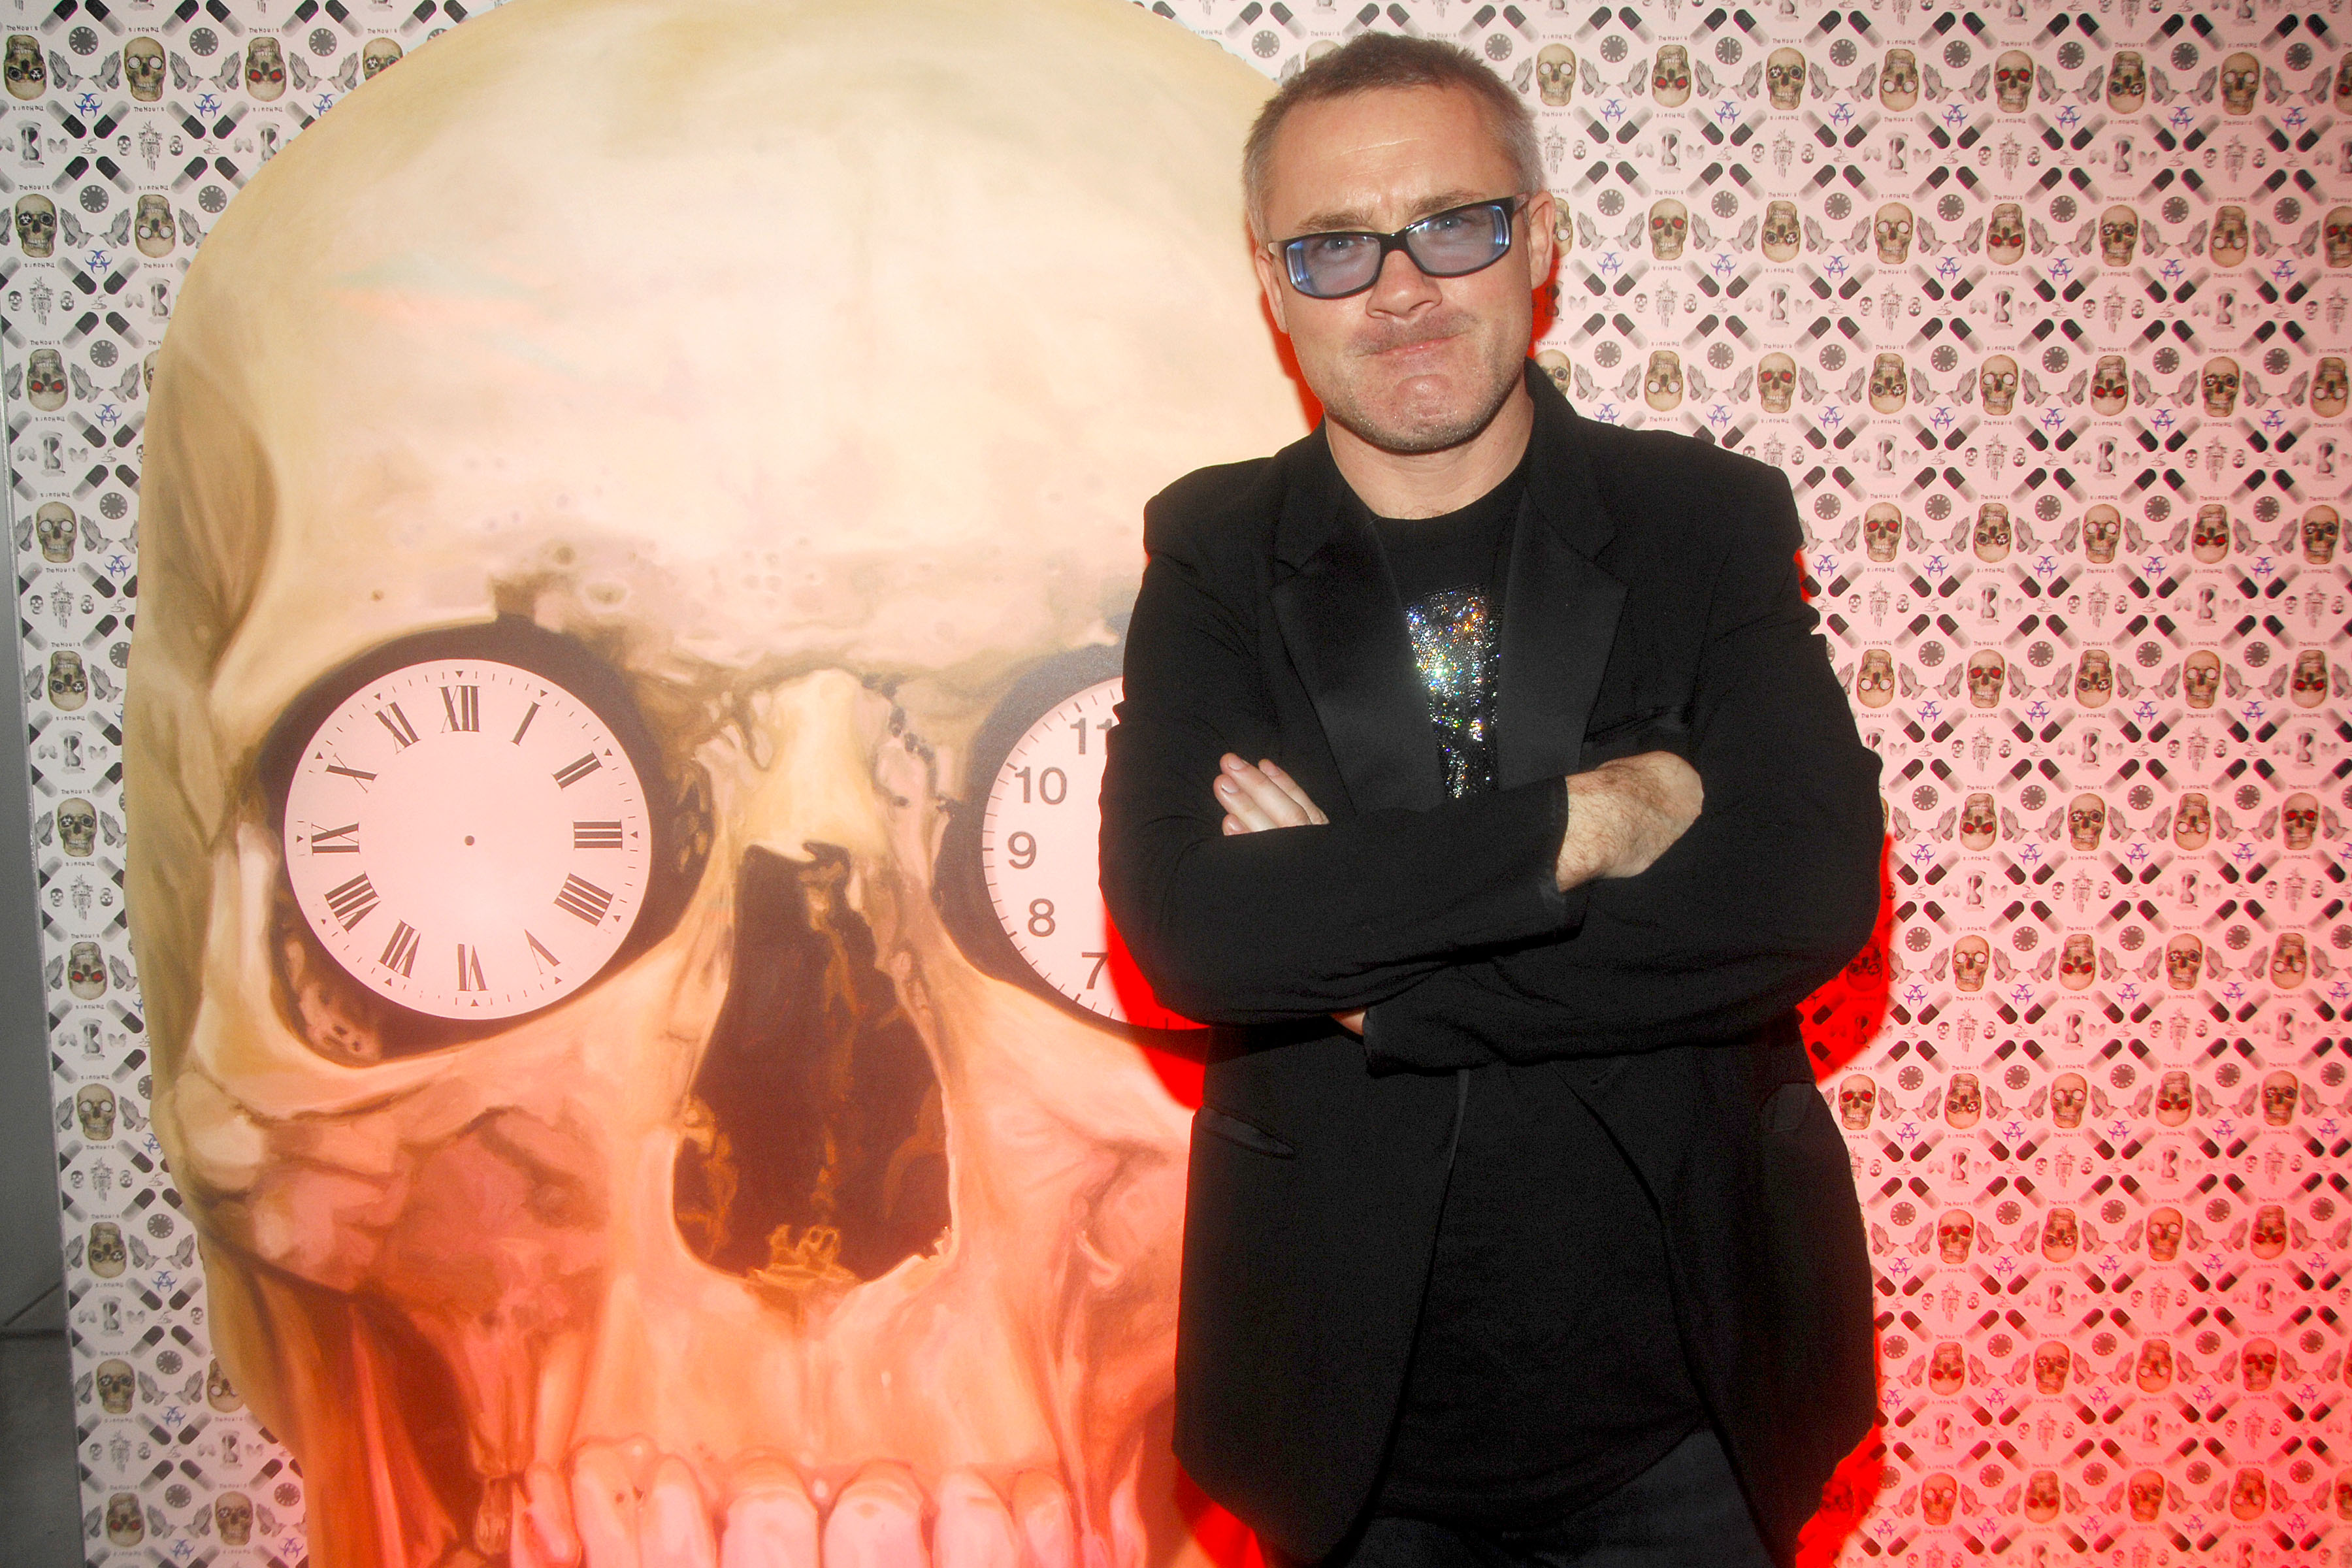 Damien Hirst's Net Worth Rose Nearly $20 Million Last Year, According to the Sunday Times's 'Rich List'